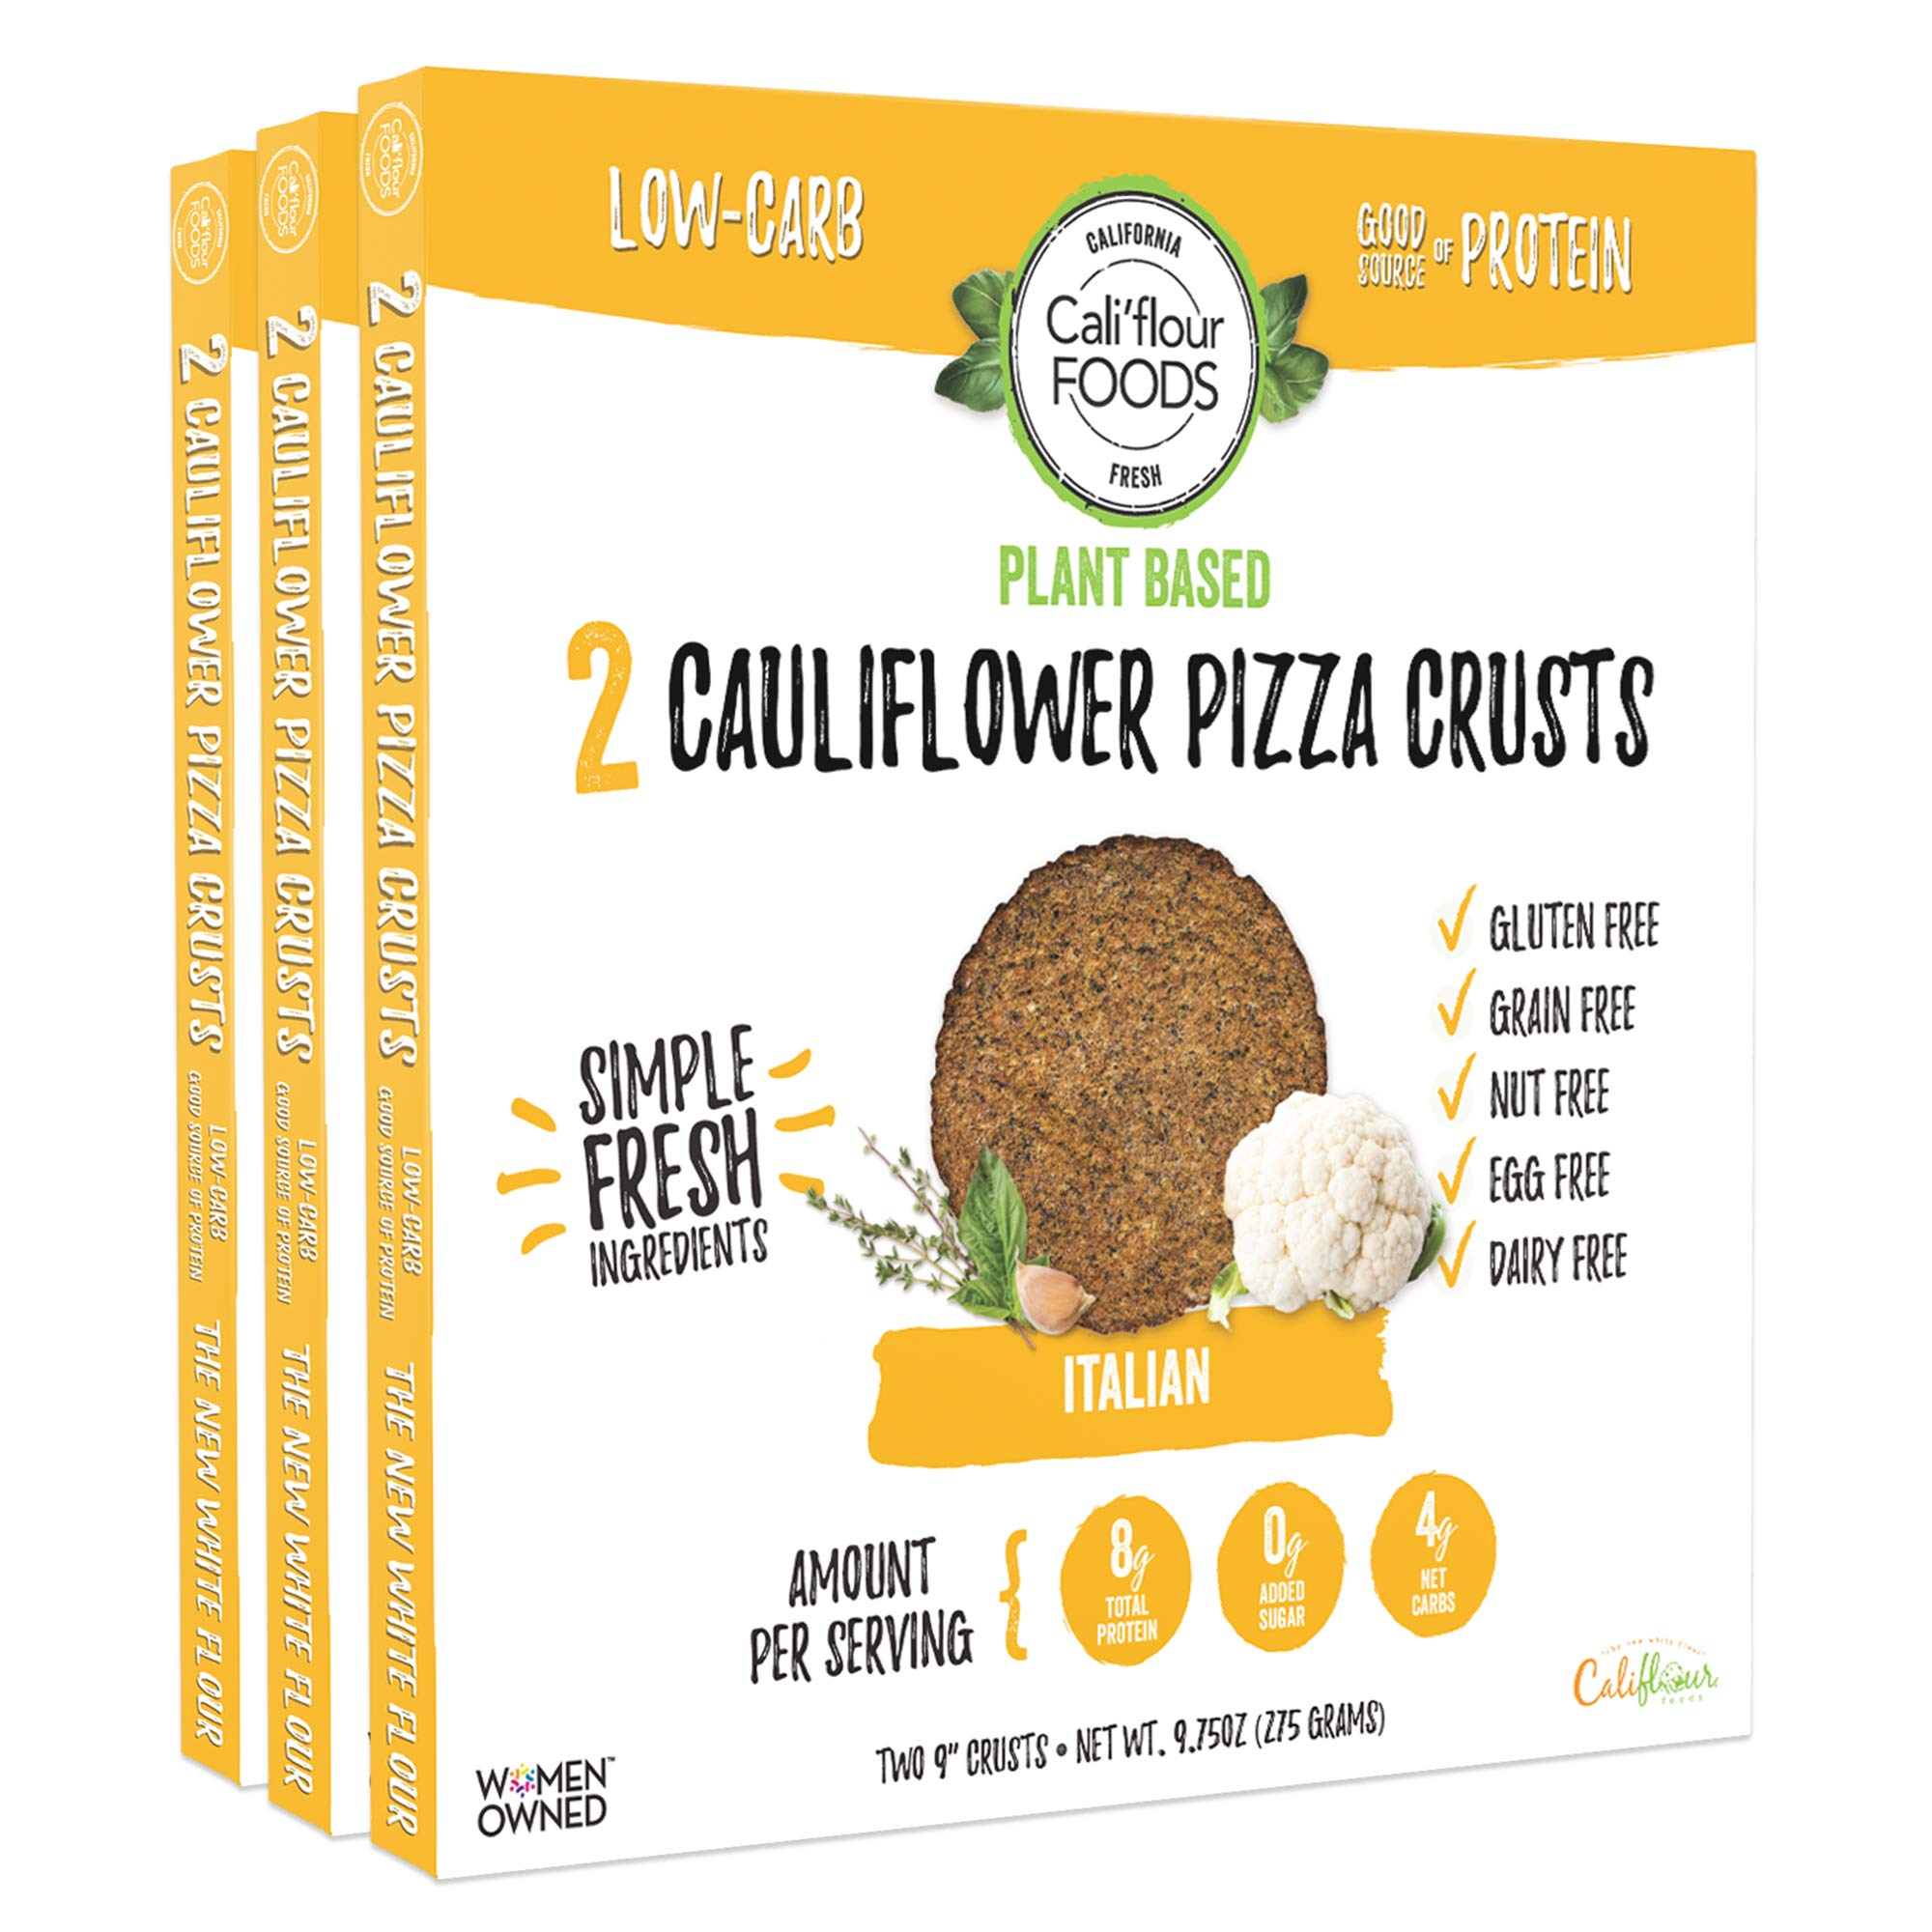 Cali'flour Foods Plant-Based Pizza Crust (Original Italian, 3 Boxes, 6 Crusts) - Fresh Cauliflower Base | Vegan, Low Carb, High Protein, Gluten and Grain Free | Paleo Friendly by THE NEW WHITE FLOUR CALIFLOUR FOODS